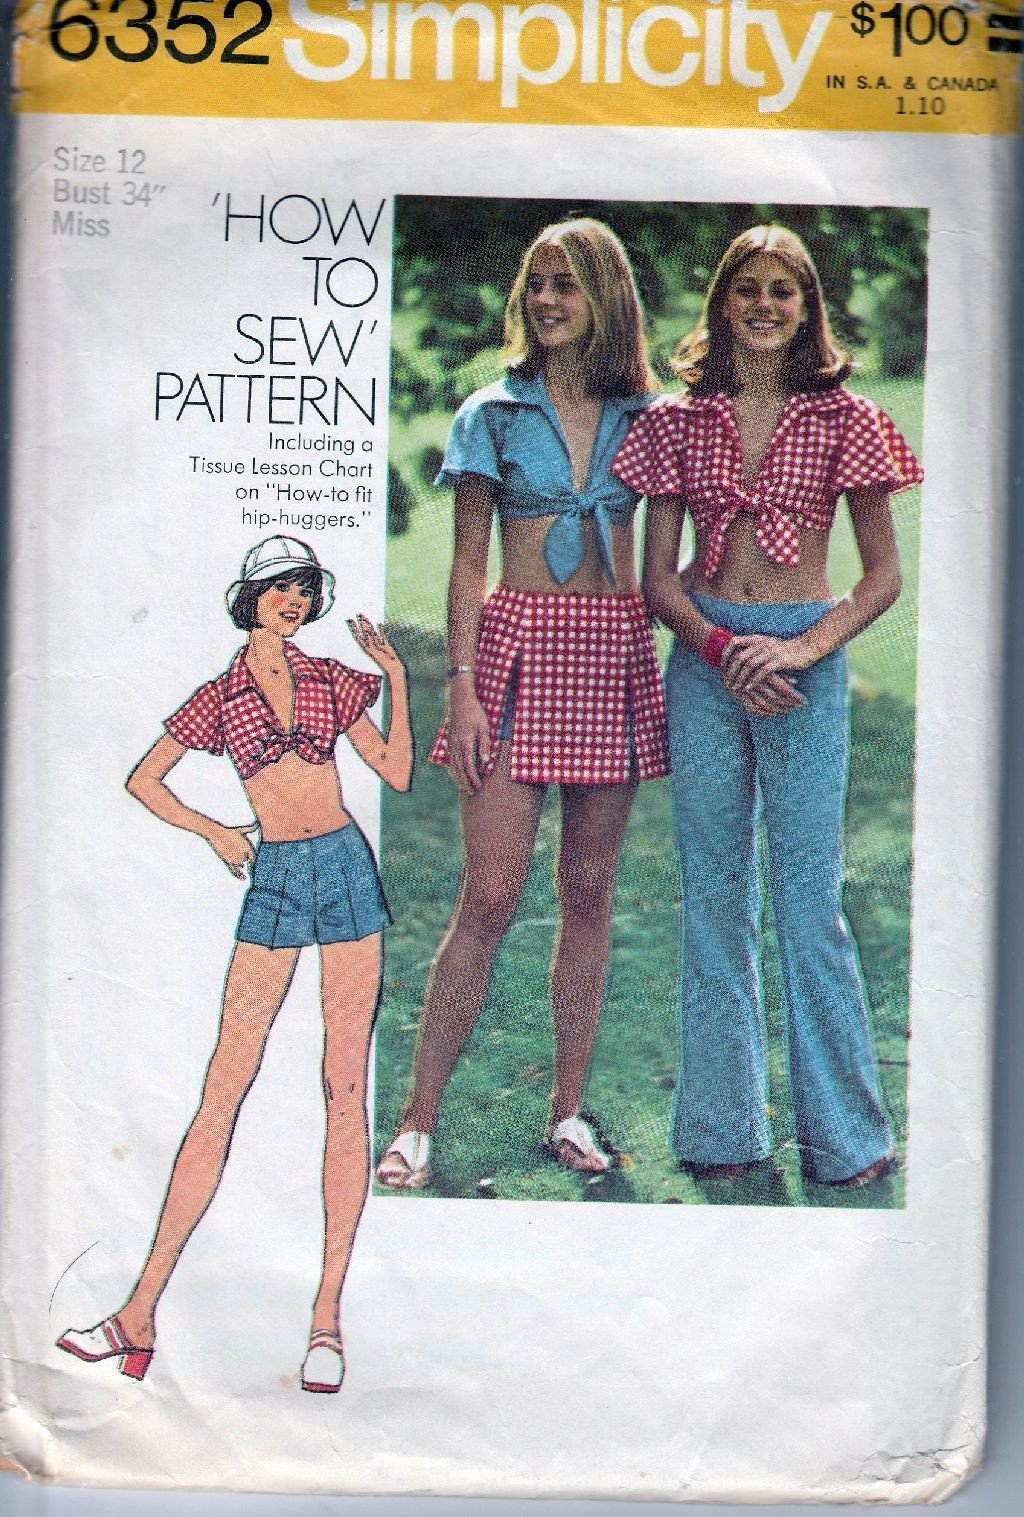 Simplicity 6352 Vintage 1970's Sewing Pattern Ladies Hip Hugger Pants Shortie Top Skirt - VintageStitching - Vintage Sewing Patterns